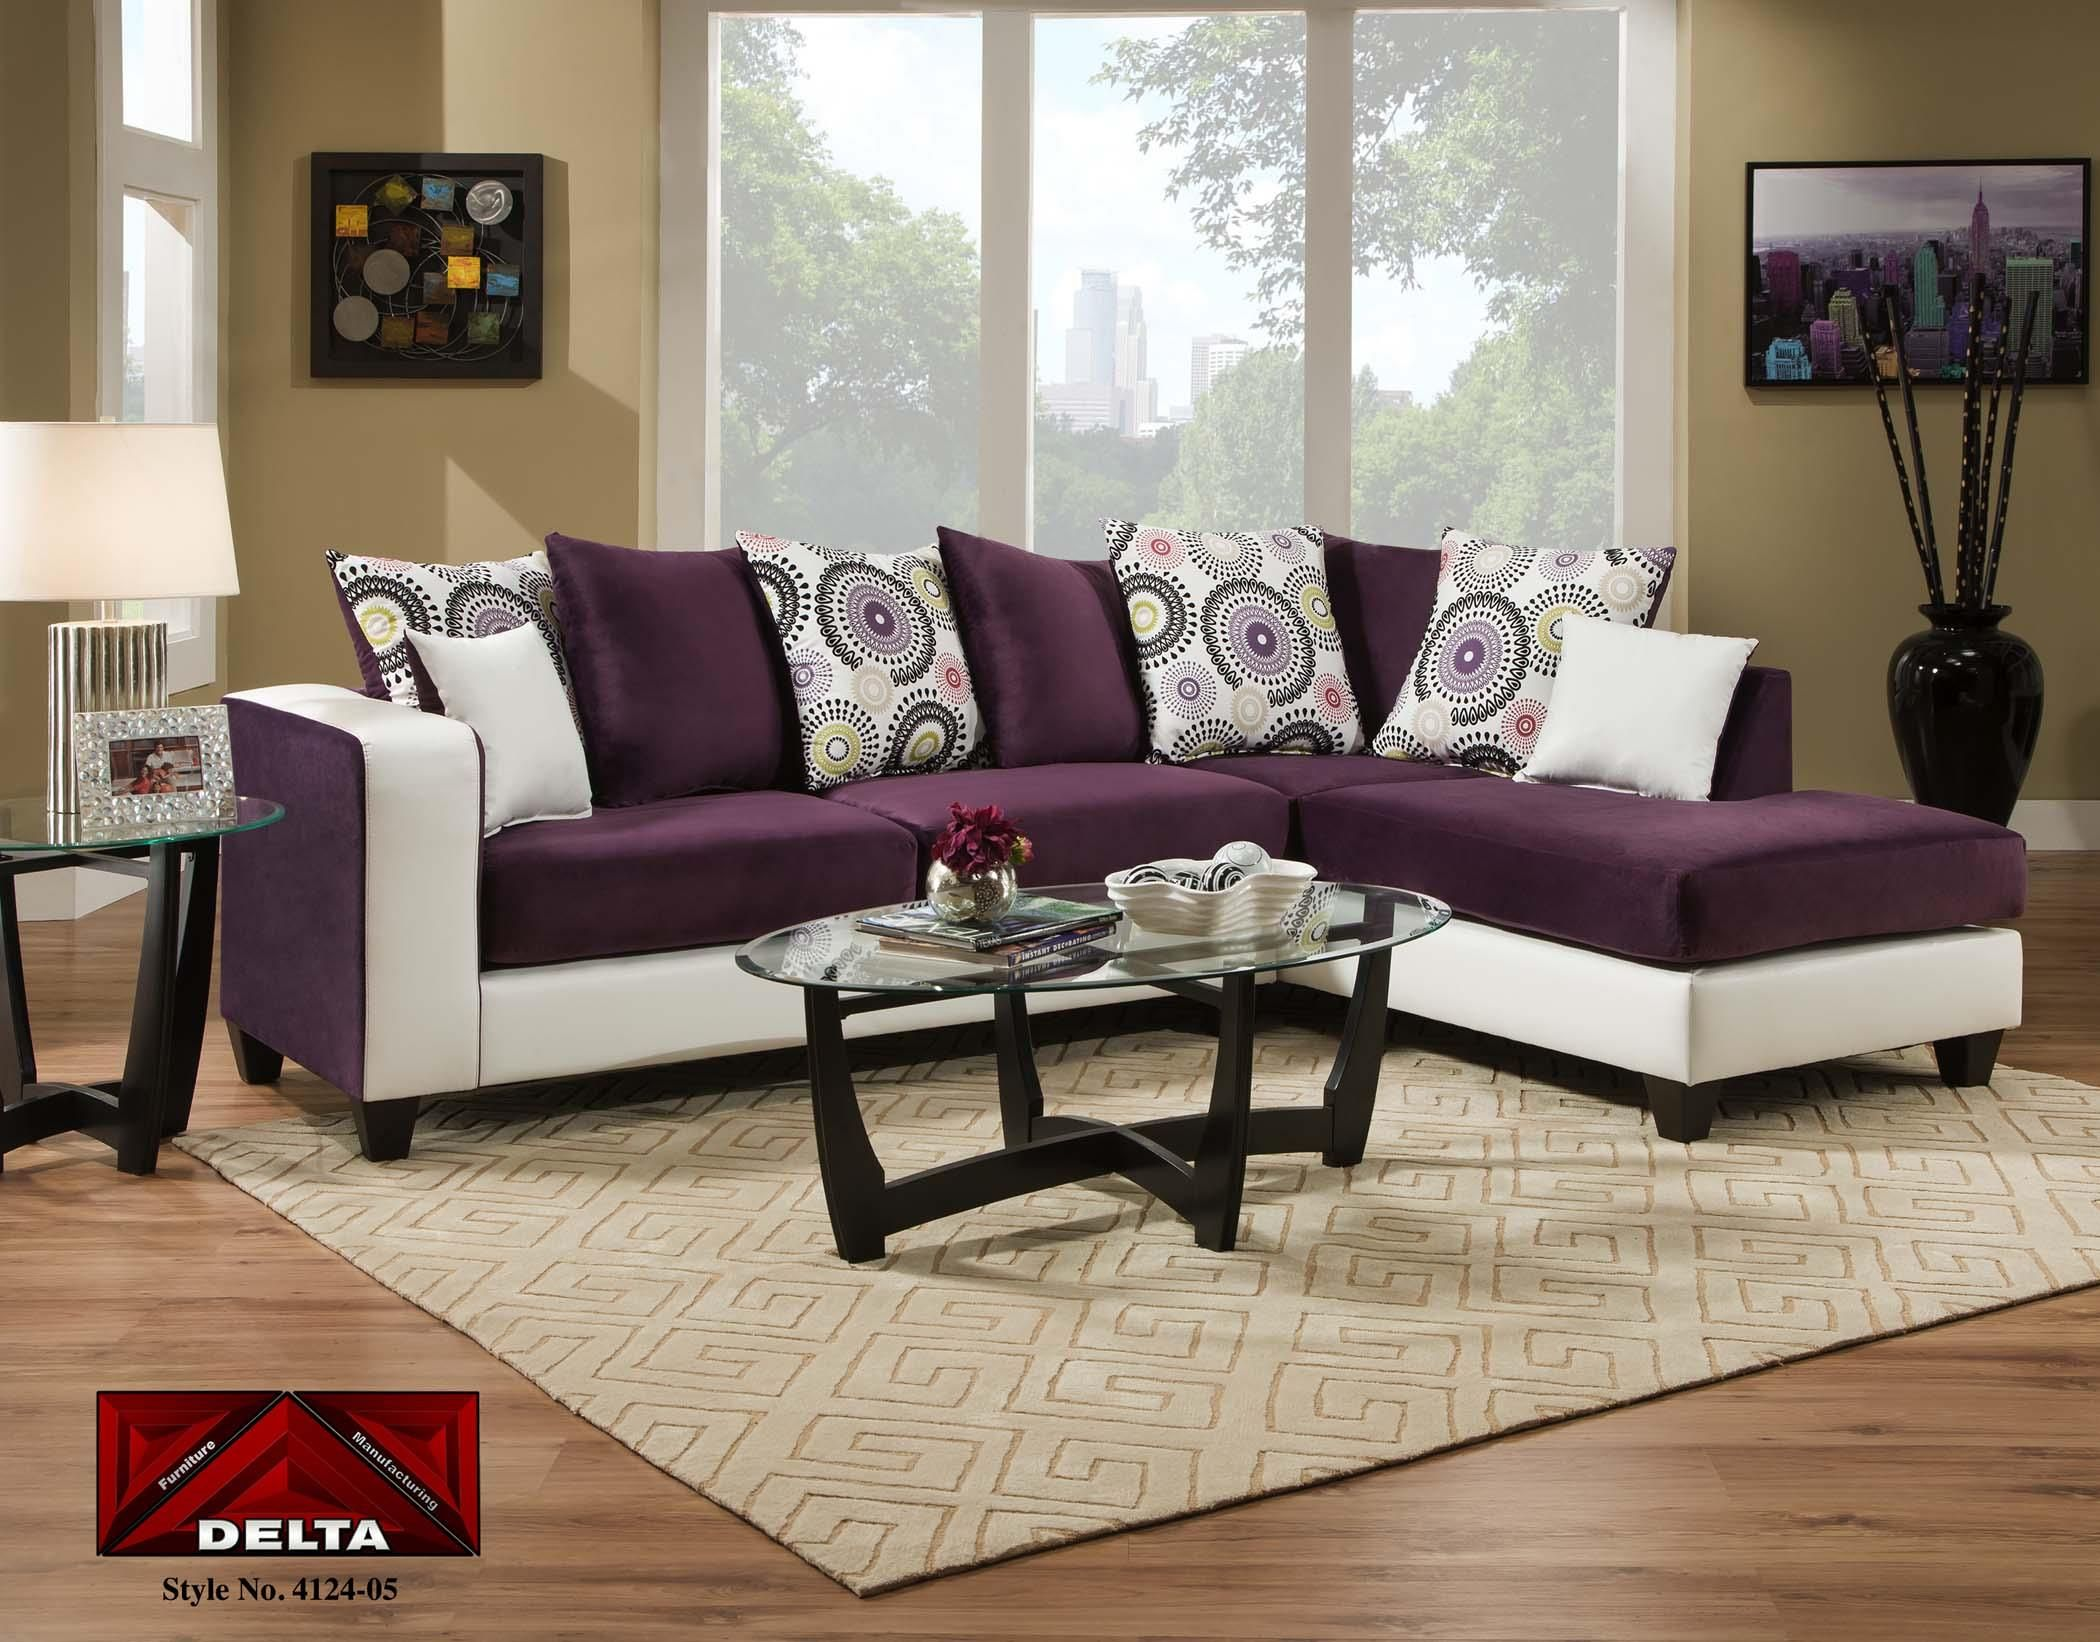 Delta 4124 Deltona Amethyst Sectional Sofa By Delta